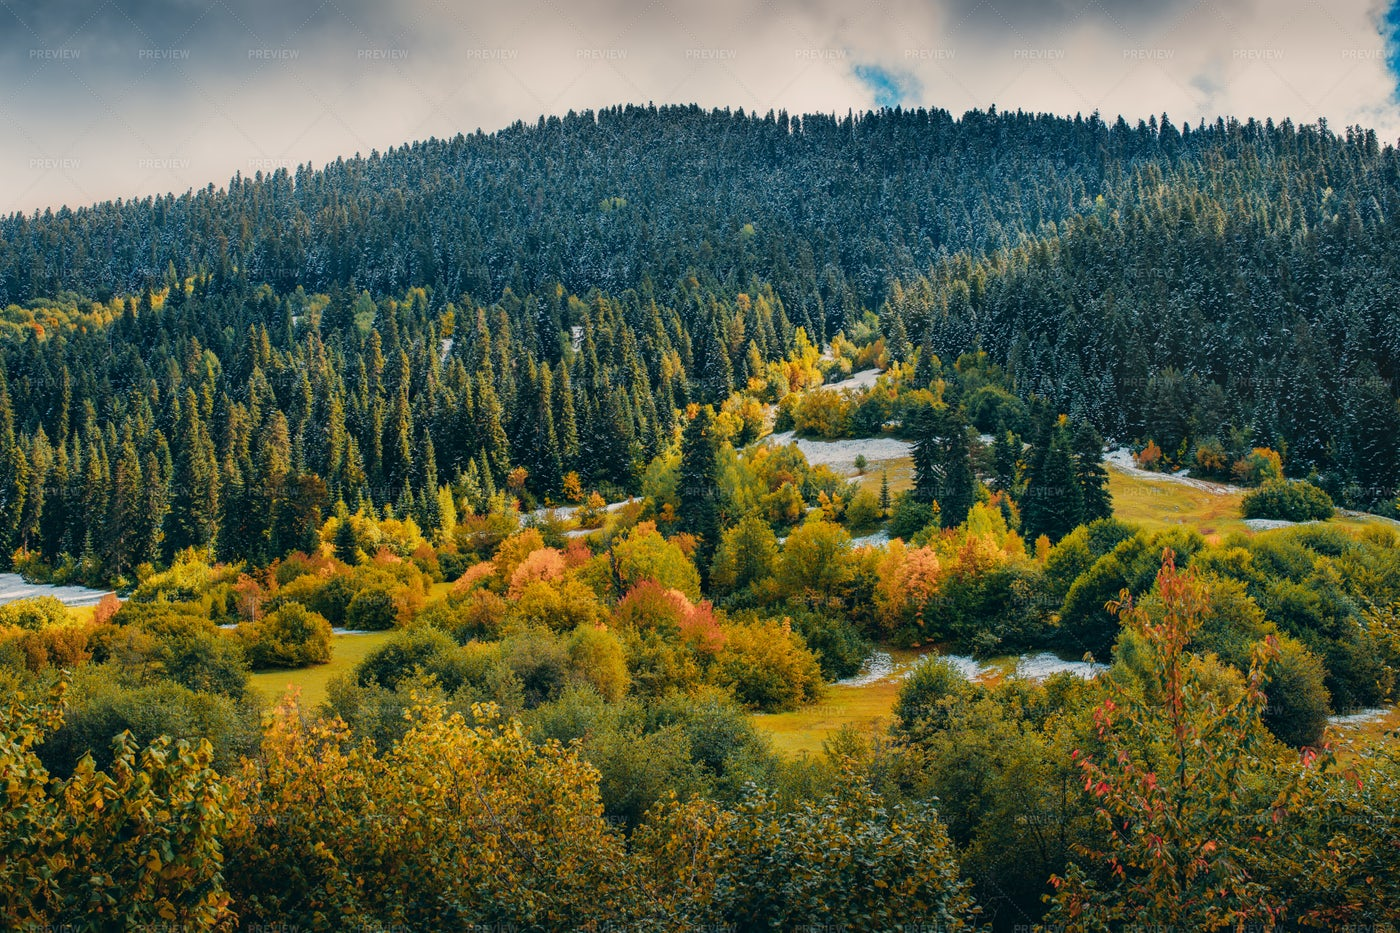 Snowy Autumn In The Mountain Forest: Stock Photos